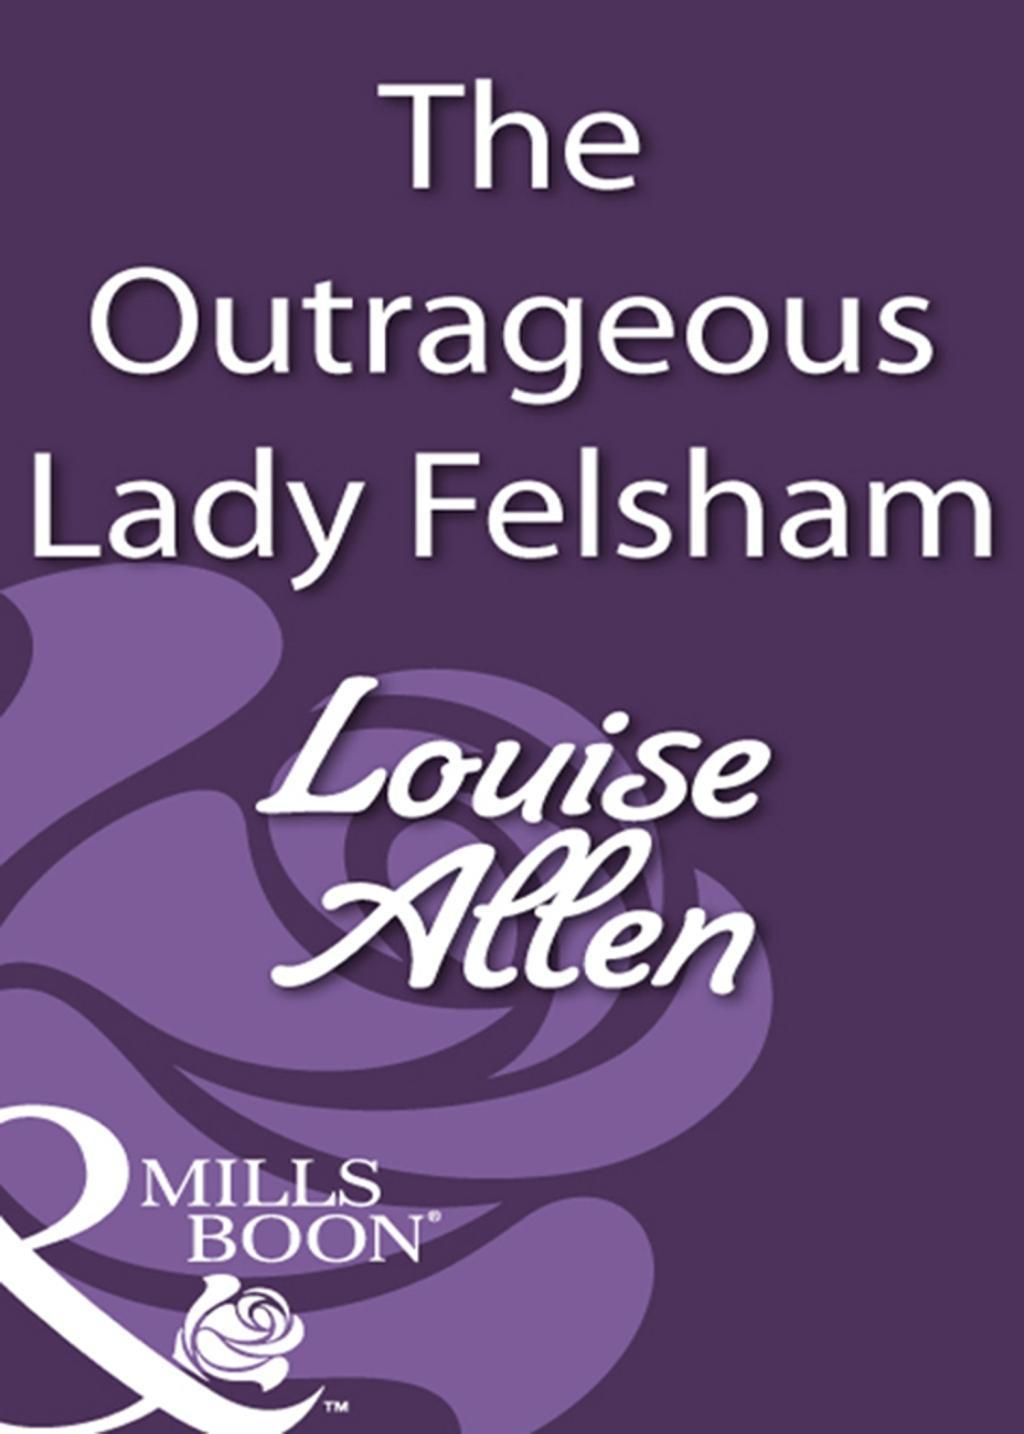 The Outrageous Lady Felsham (Mills & Boon Historical)